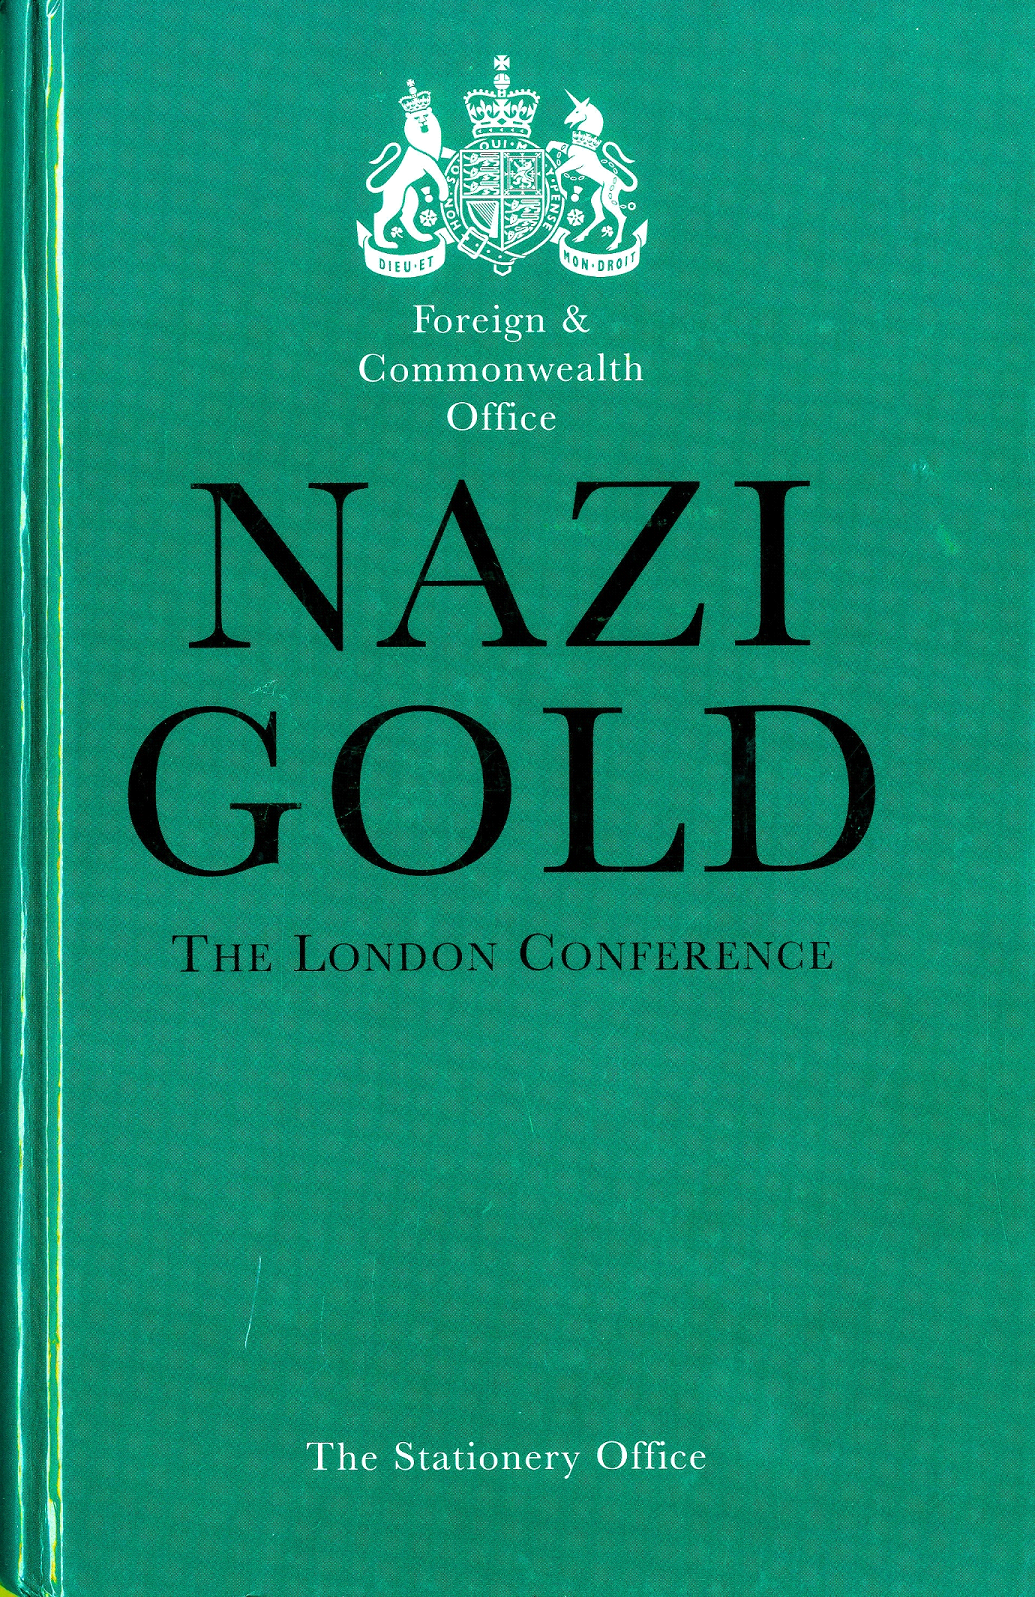 nazi-gold-london-conference-1997